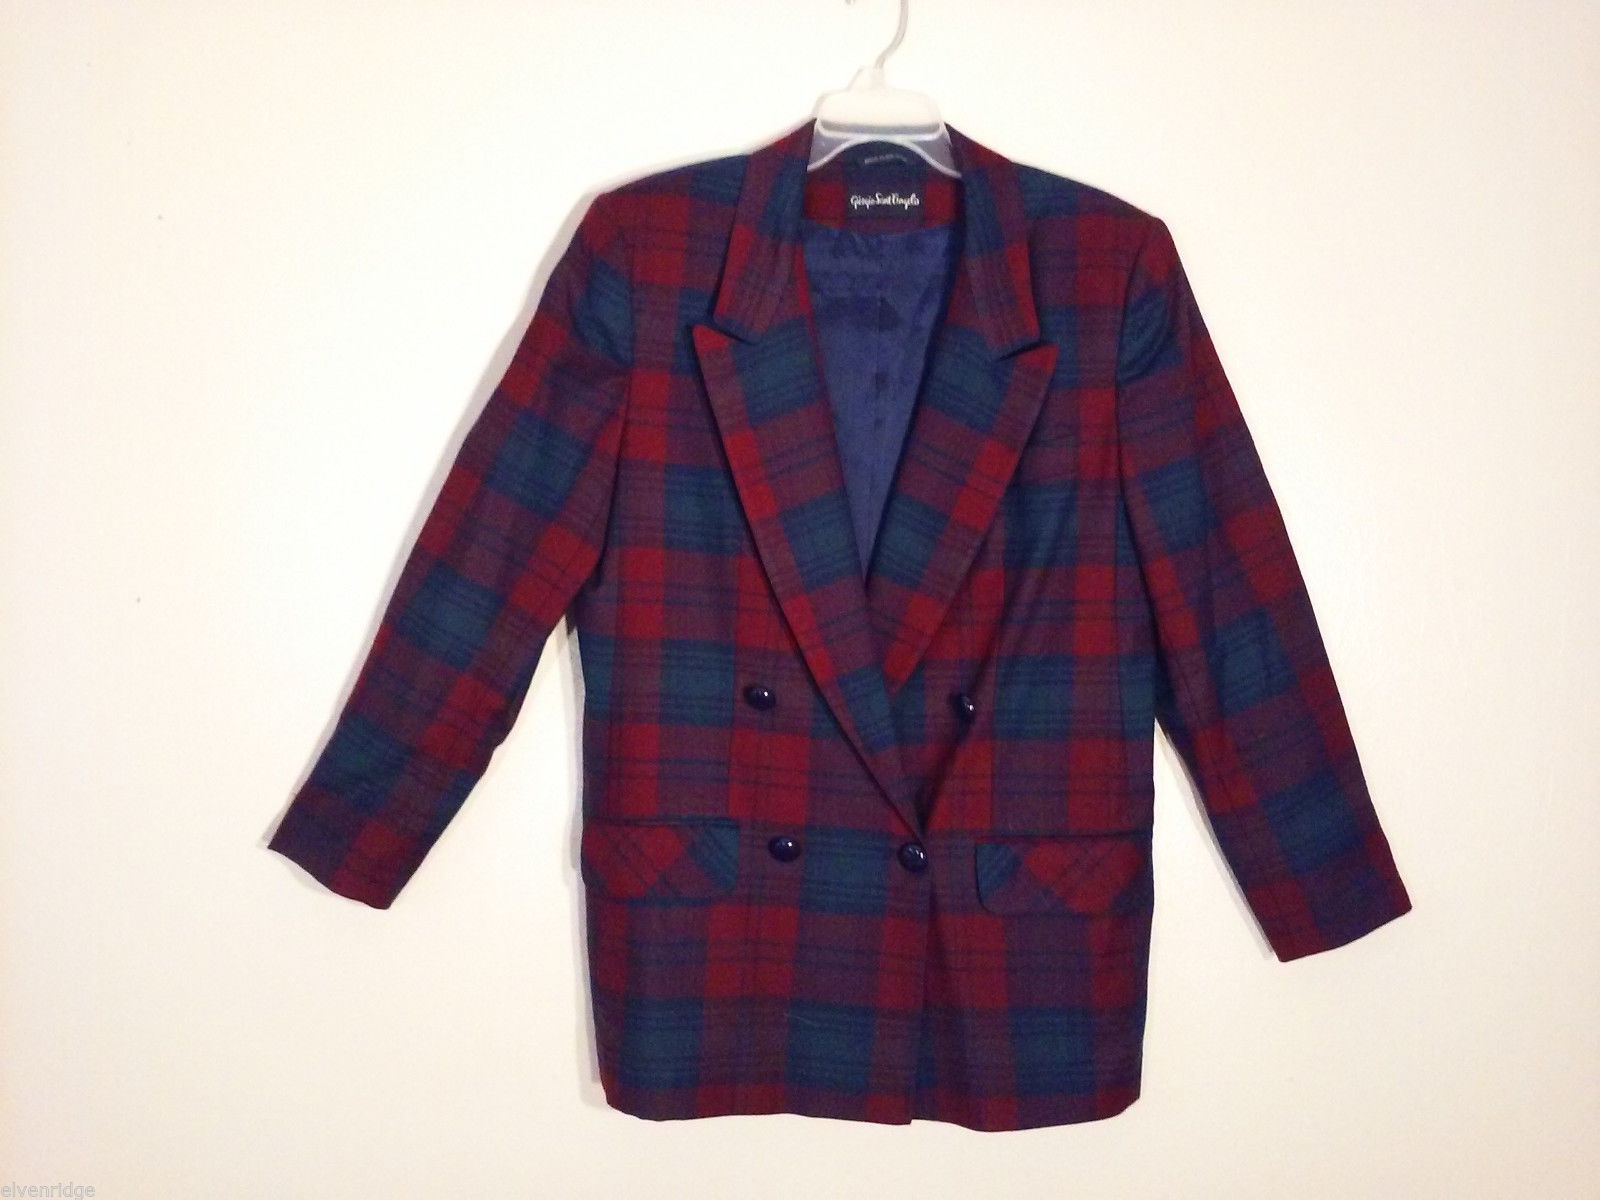 Giorgio Sant' Angelo Women's Size 12 Wool Blazer Plaid in Blue Red Green Yellow